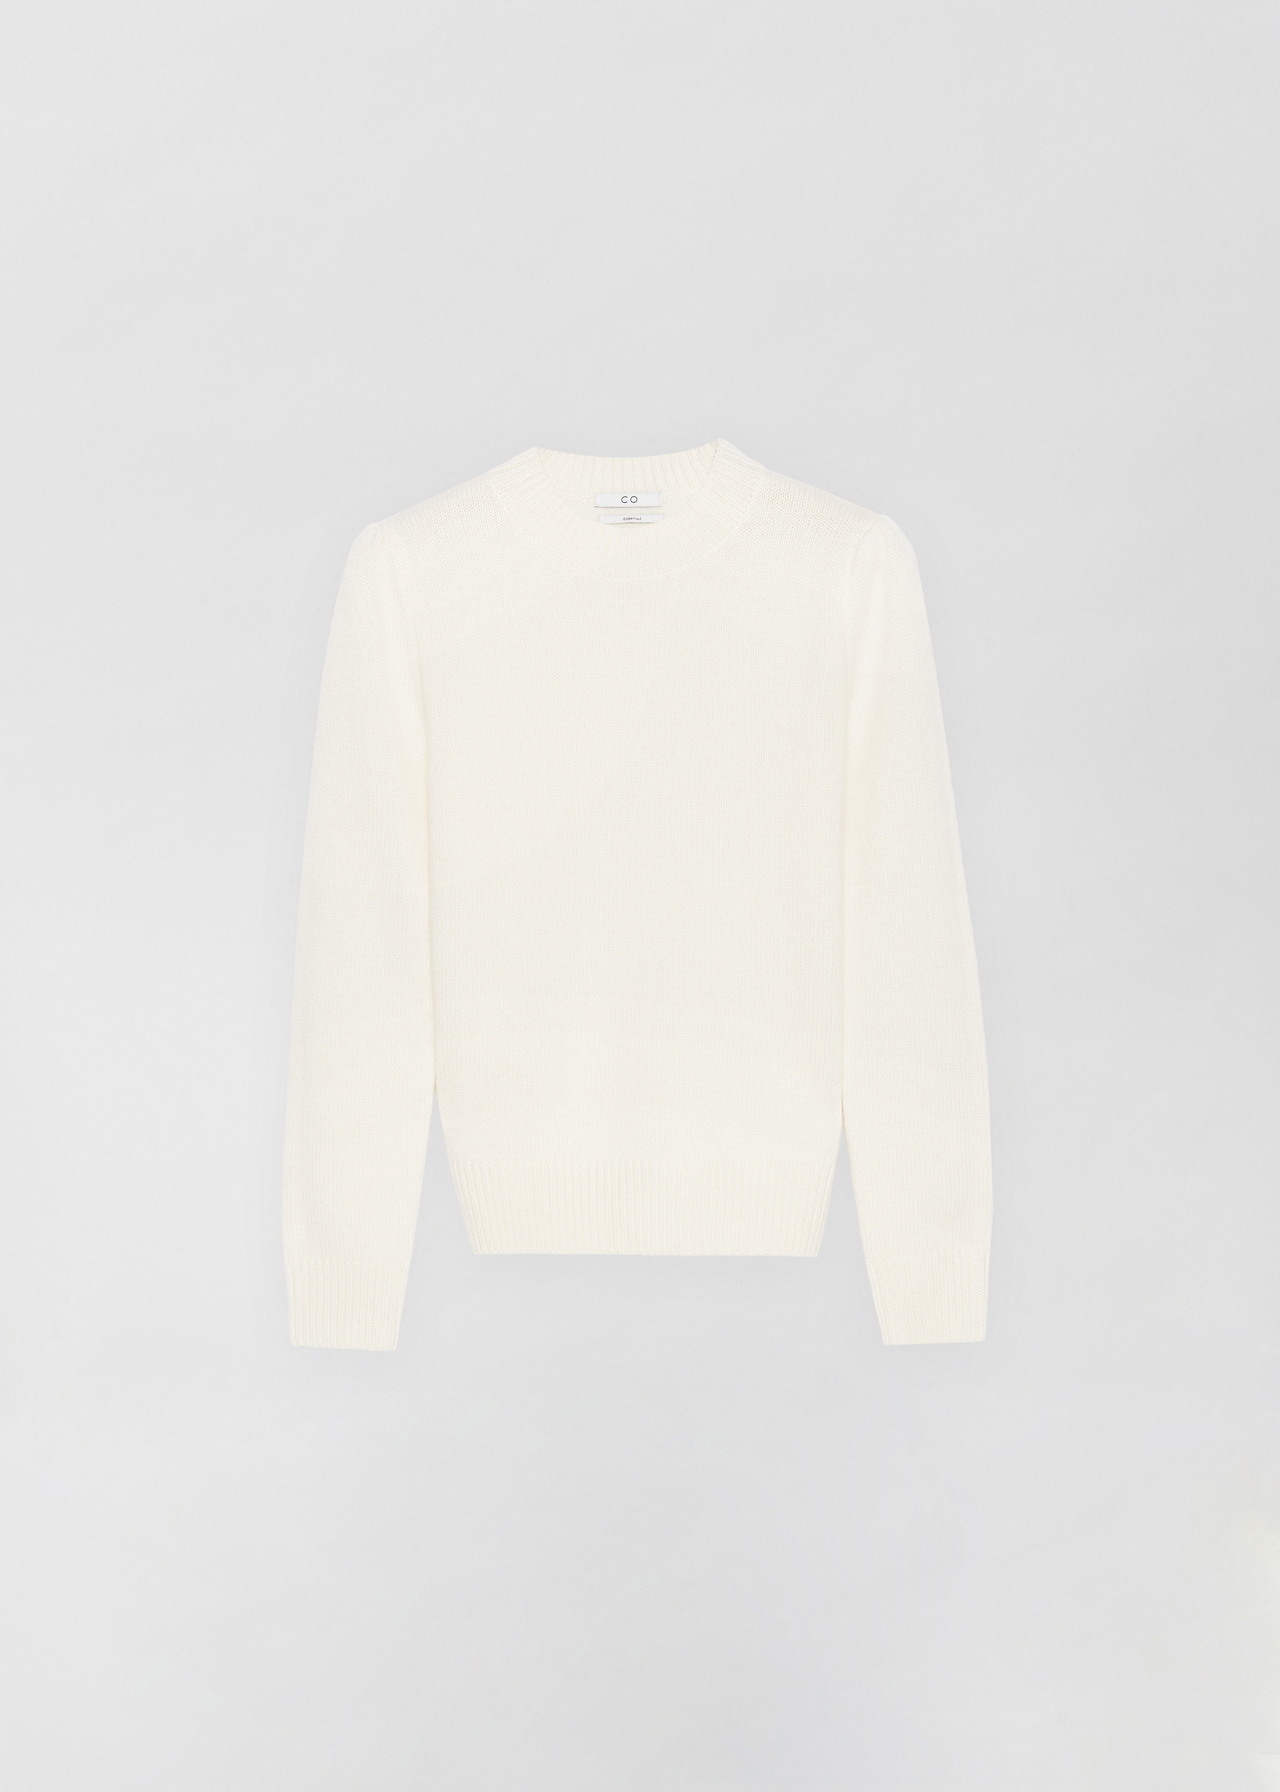 Ruched Cashmere Crew Neck Sweater - Light Grey in Ivory by Co Collections